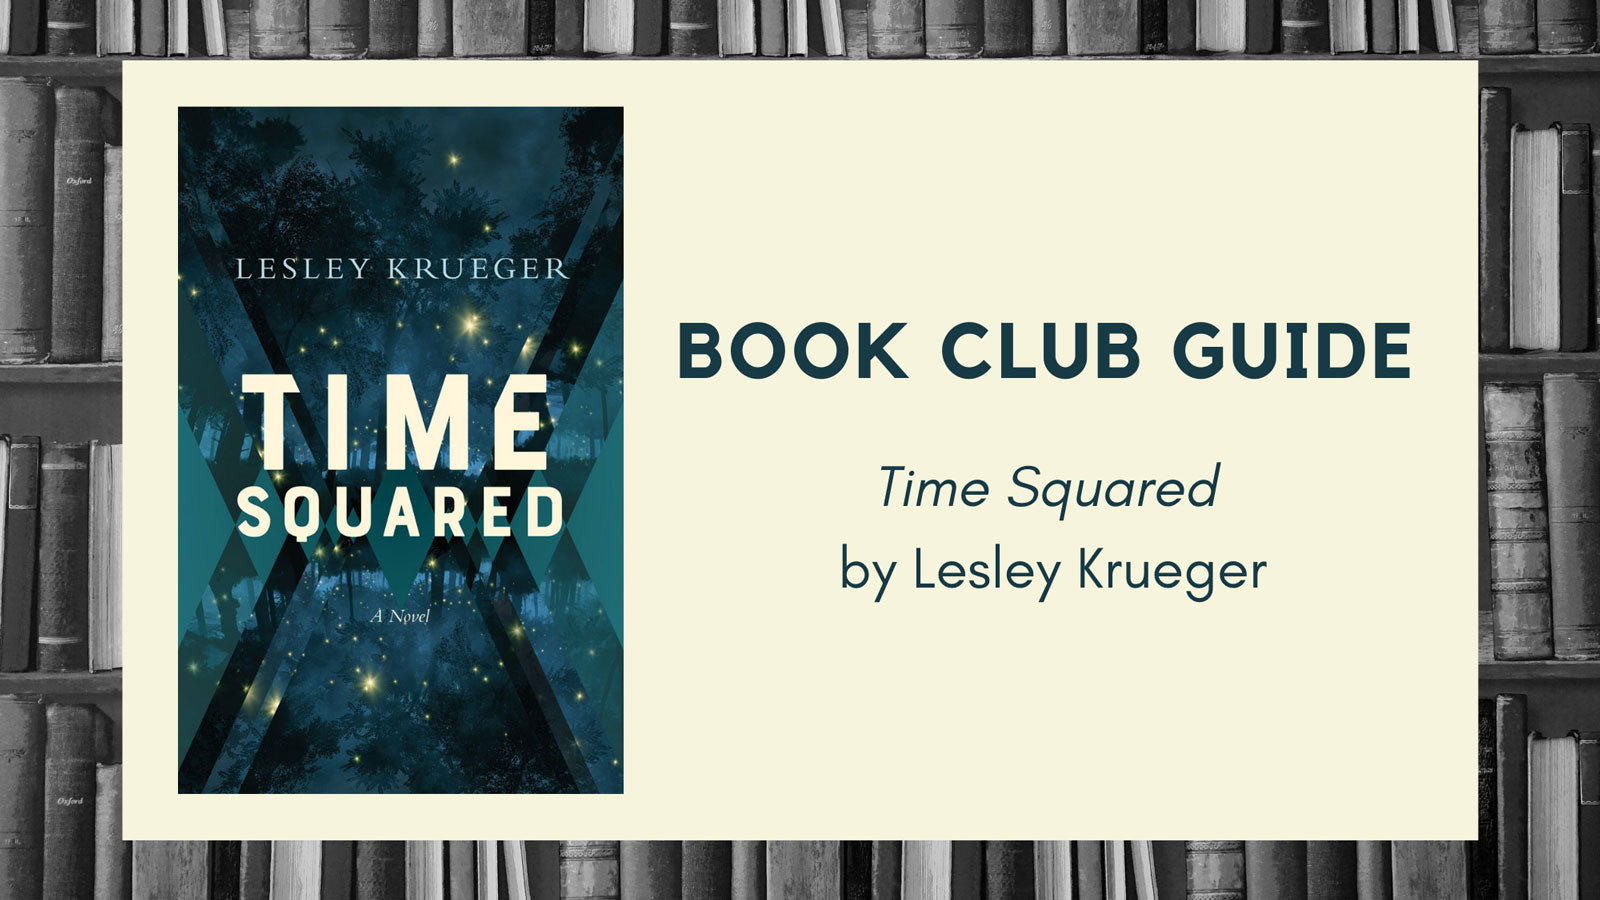 Book Club Guide: Time Squared by Lesley Krueger